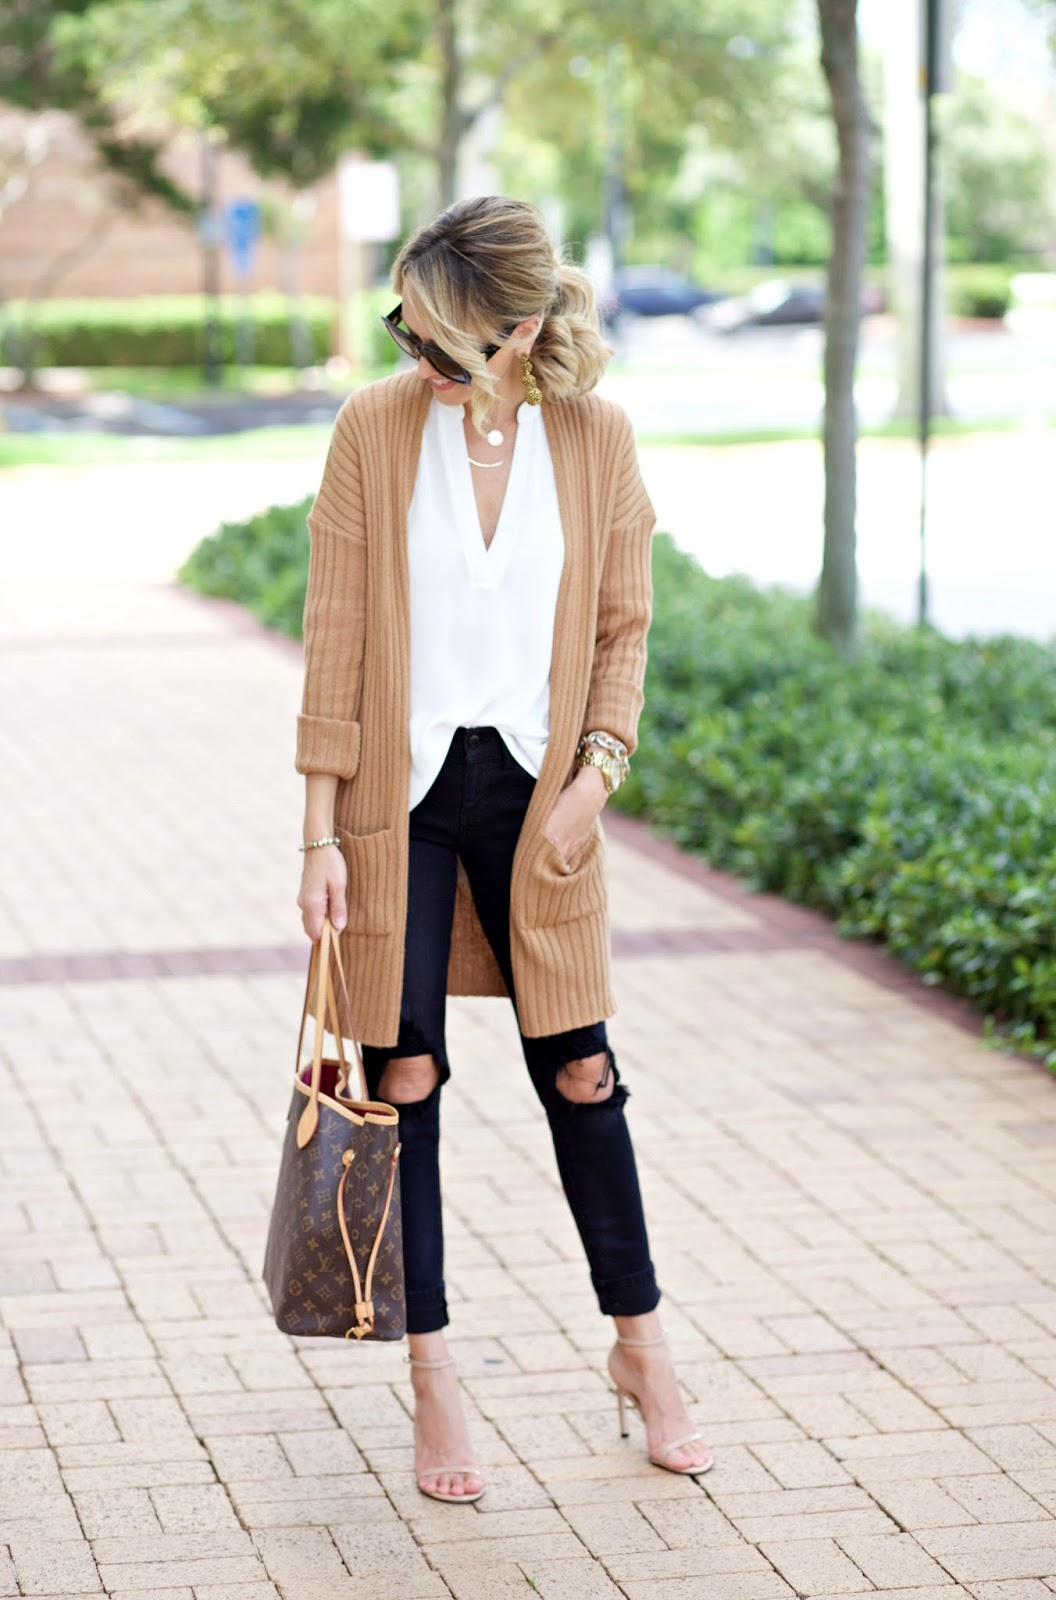 A Spoonful Of Style: A Favorite Fall Outfit From The NSale